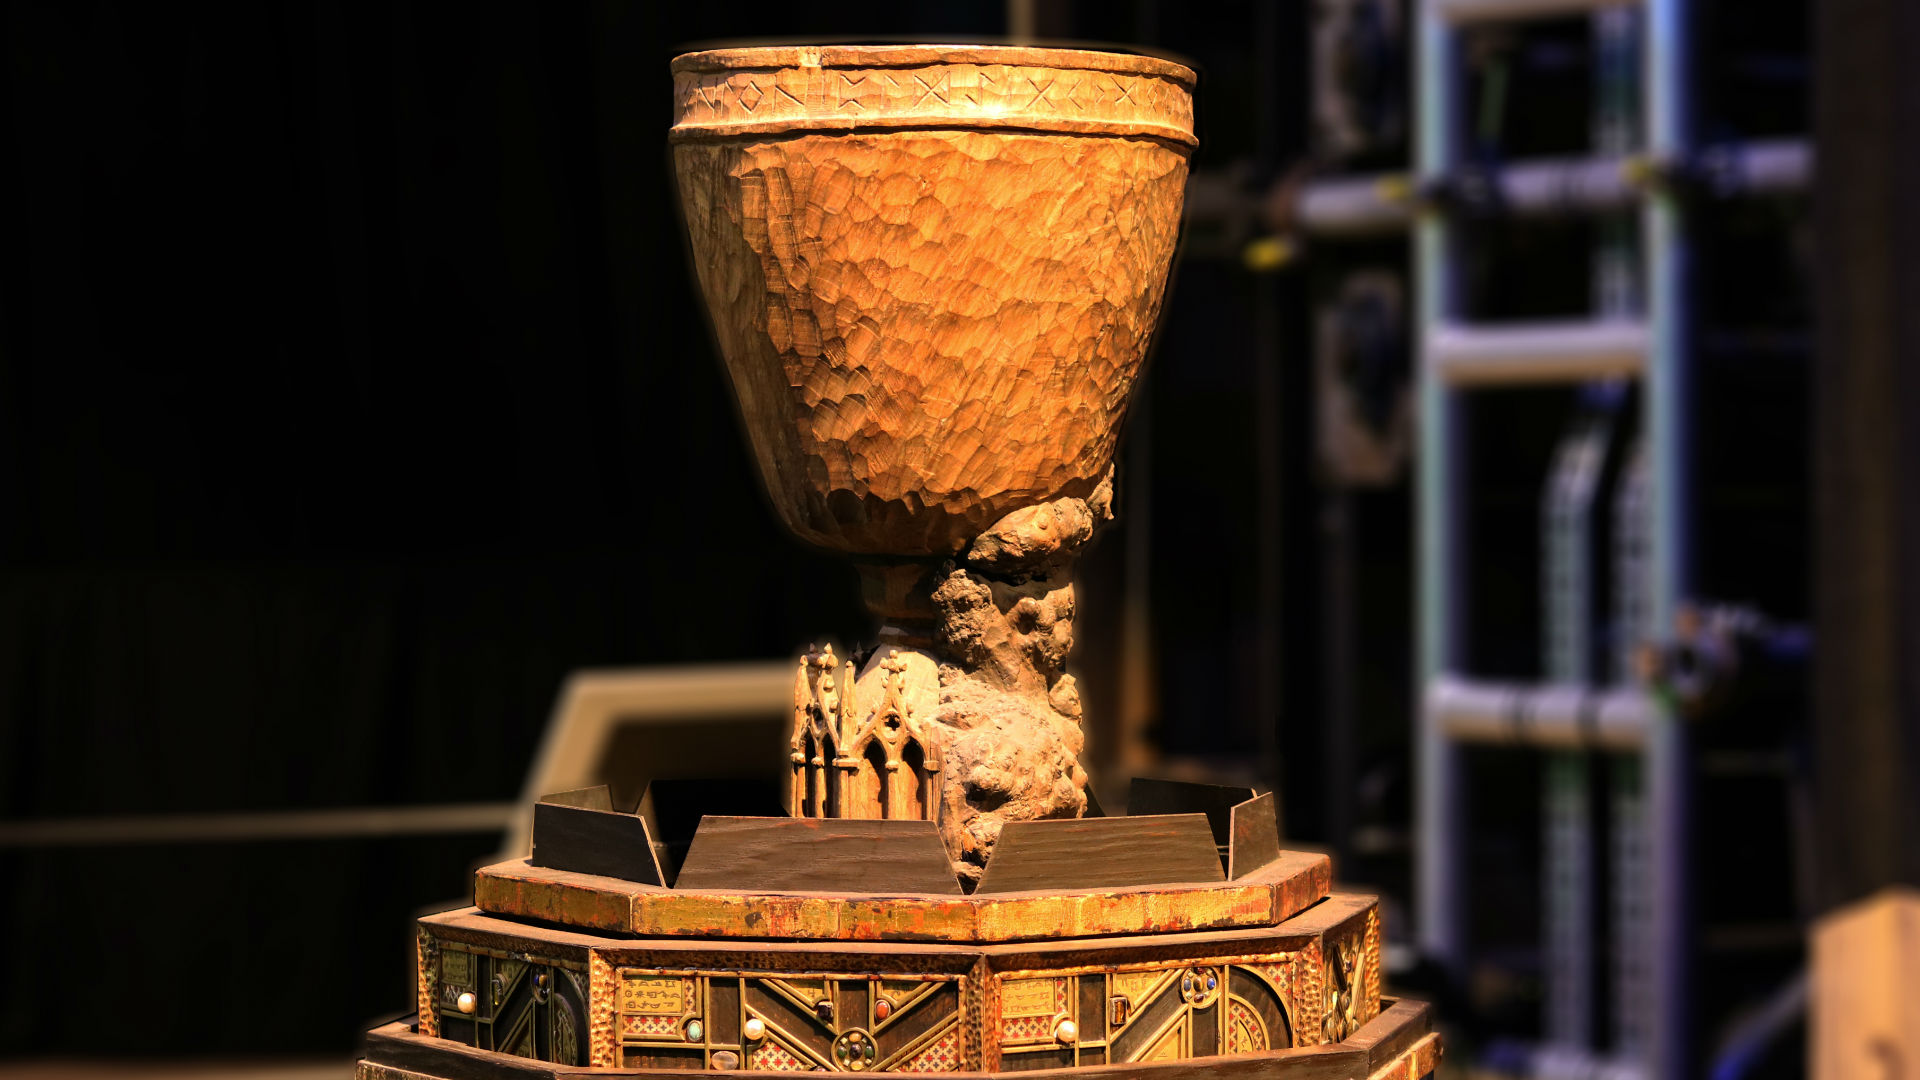 The Goblet of Fire at Warner Bros. Studio Tour London - Making of Harry Potter. TM & © Warner Bros. Entertainment Inc. Harry Potter Publishing Rights © JKR.